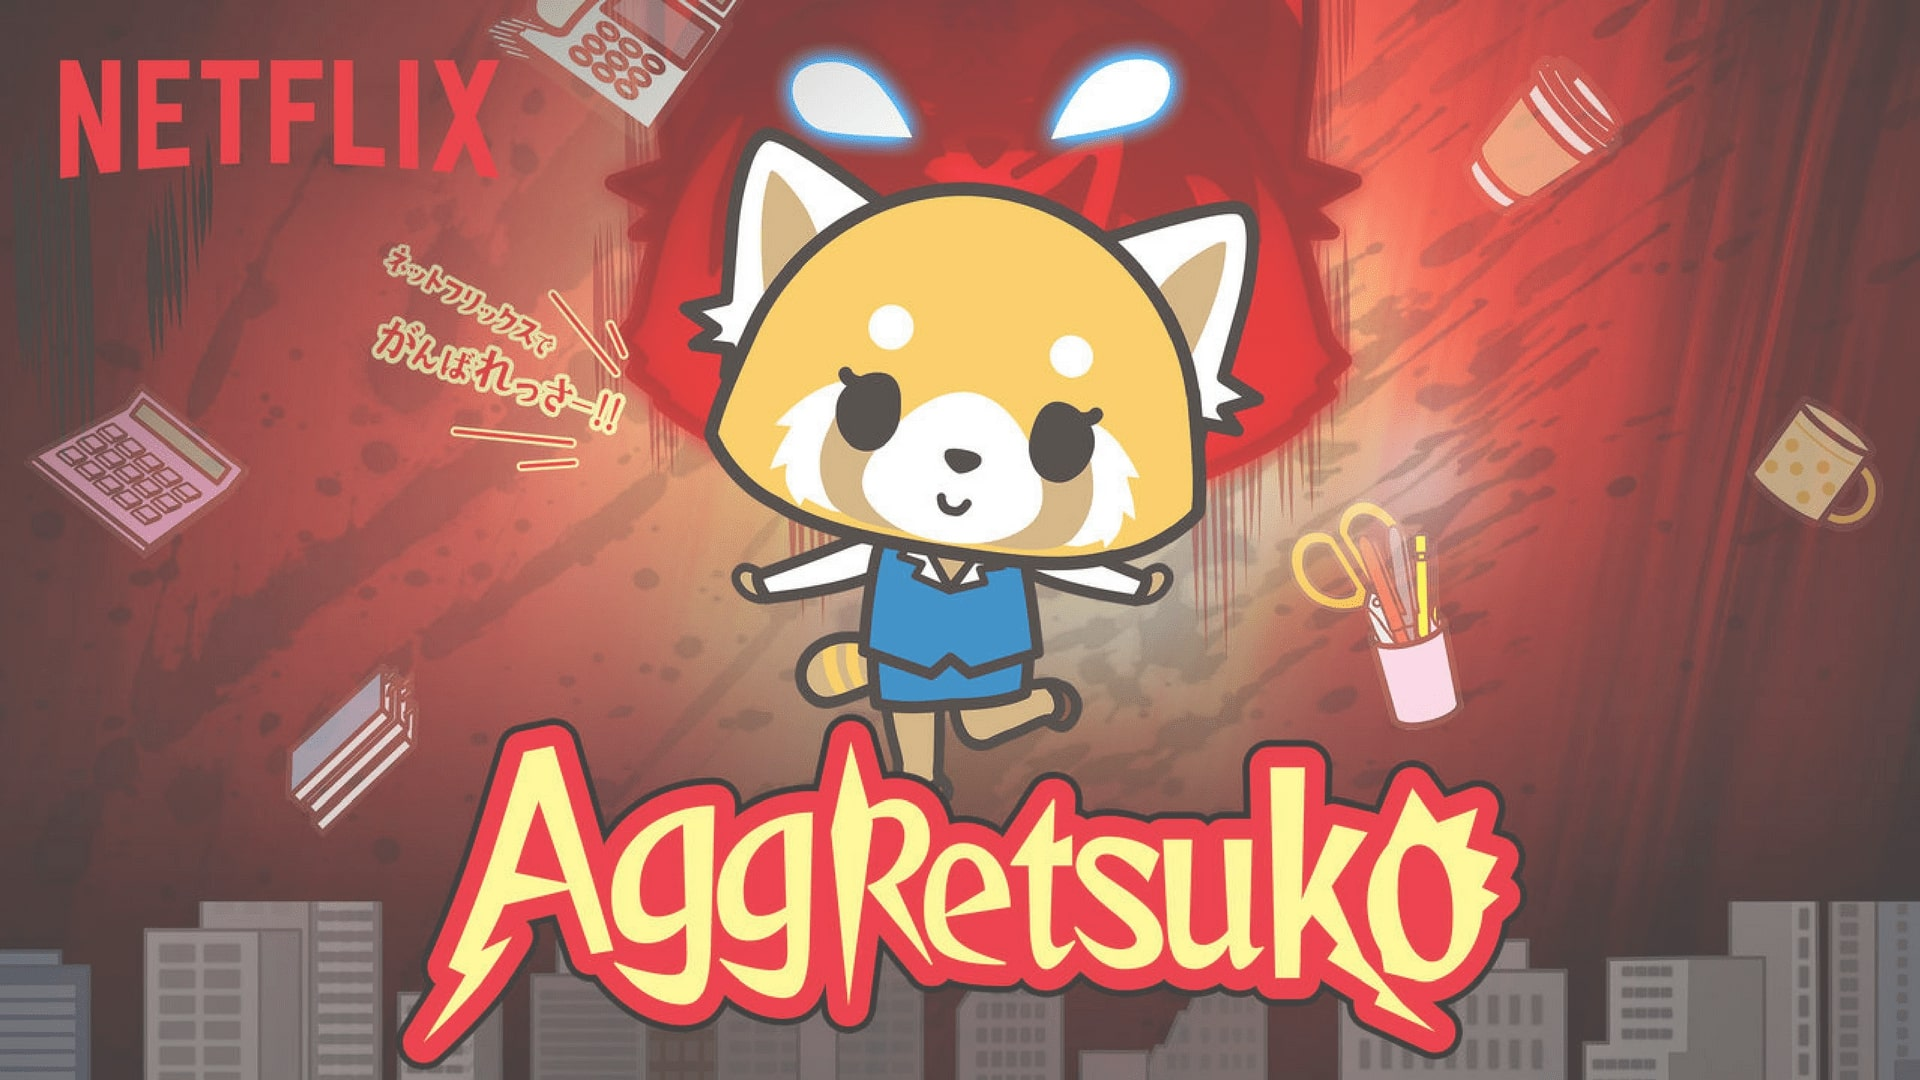 Netflix: Aggretsuko Season 4 Release Date & More - Here Is Everything We Know